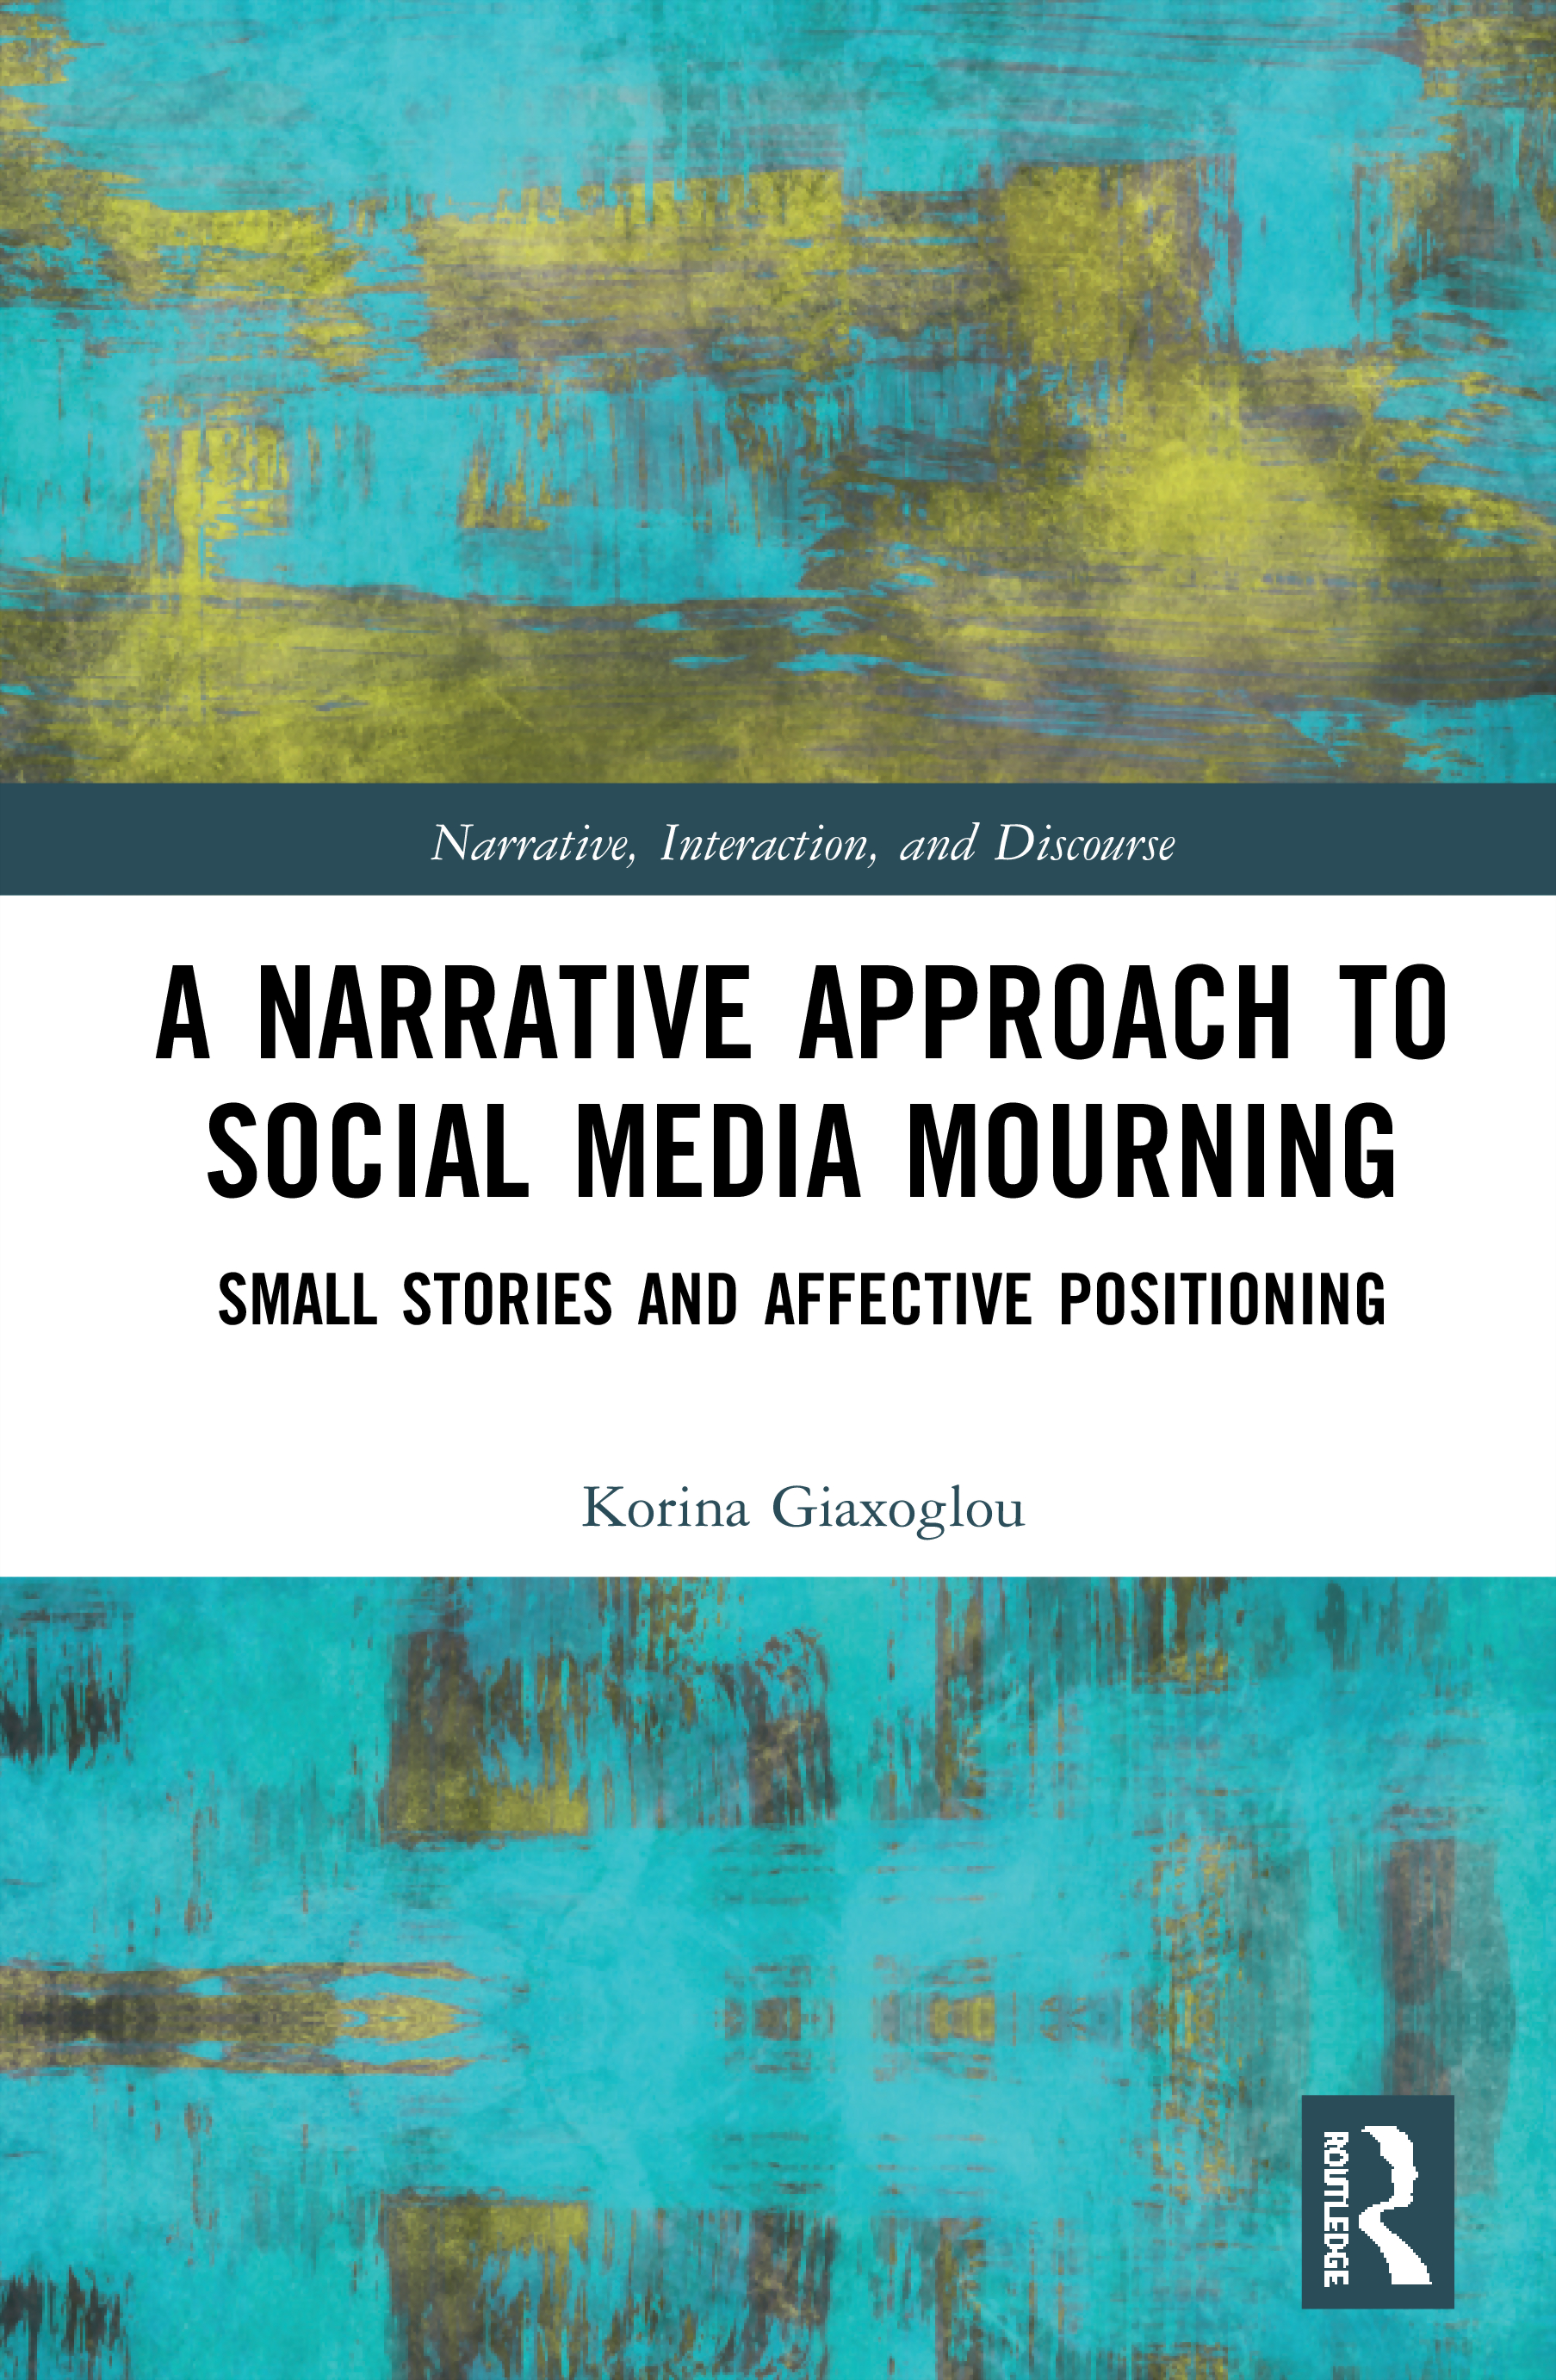 A Narrative Approach to Social Media Mourning: Small Stories and Affective Positioning book cover